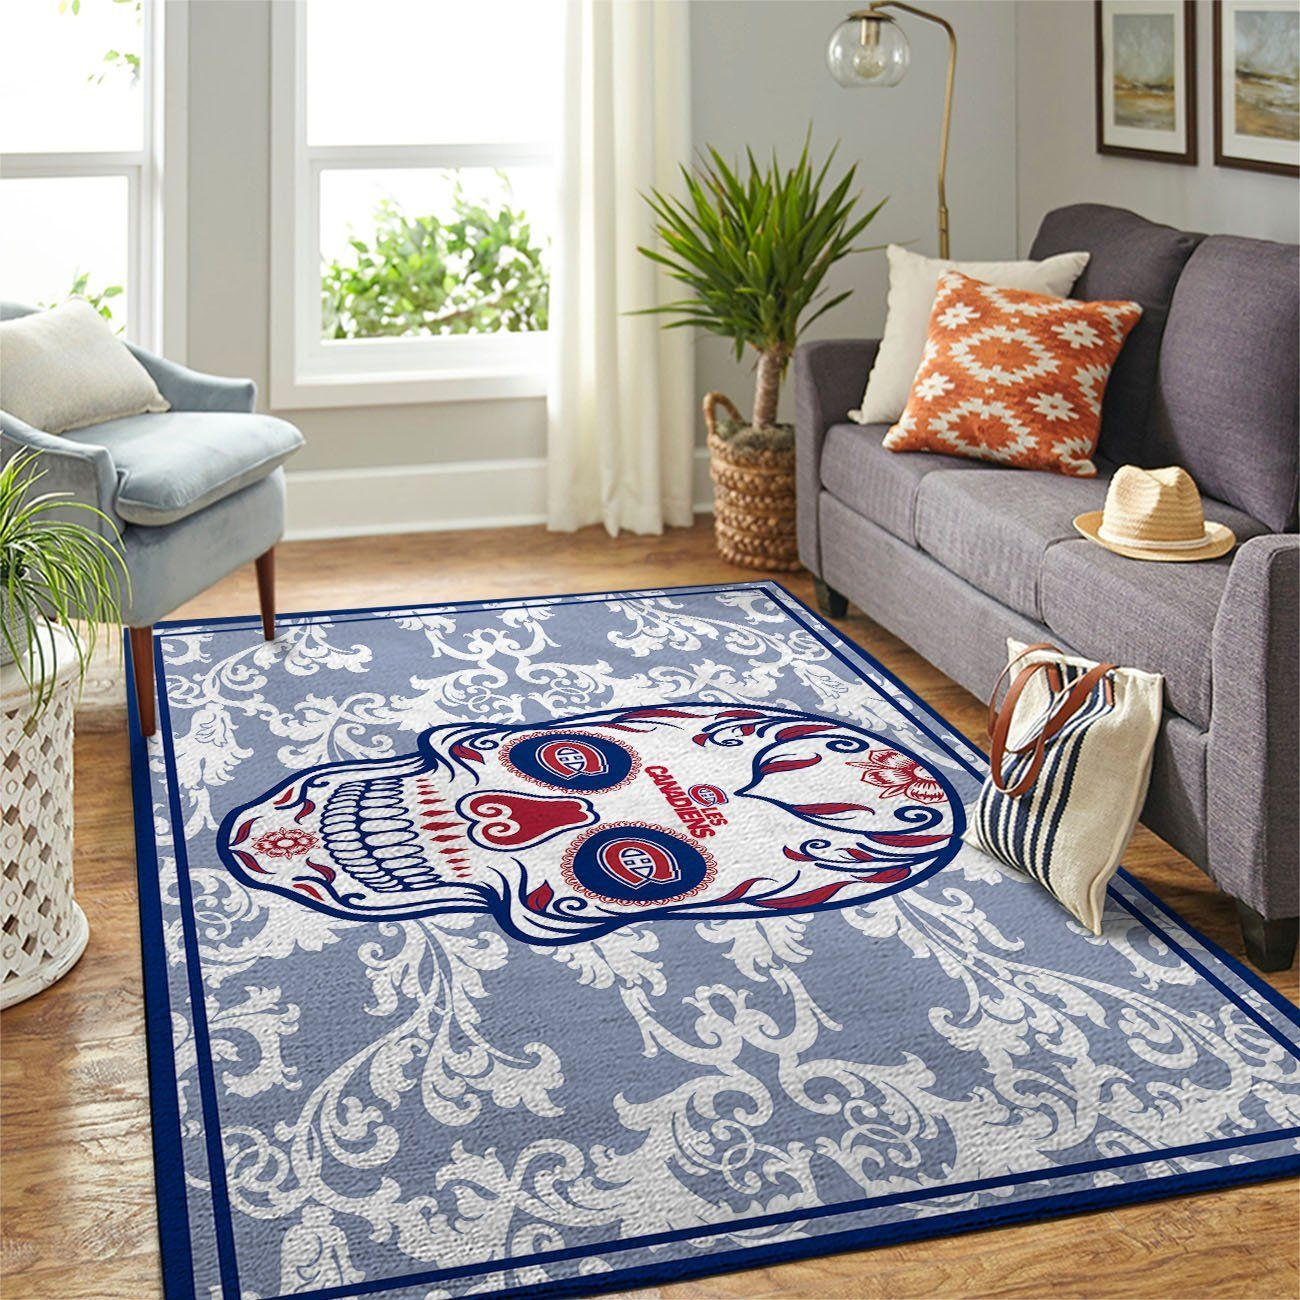 Amazon Montr?al Canadiens Living Room Area No3999 Rug